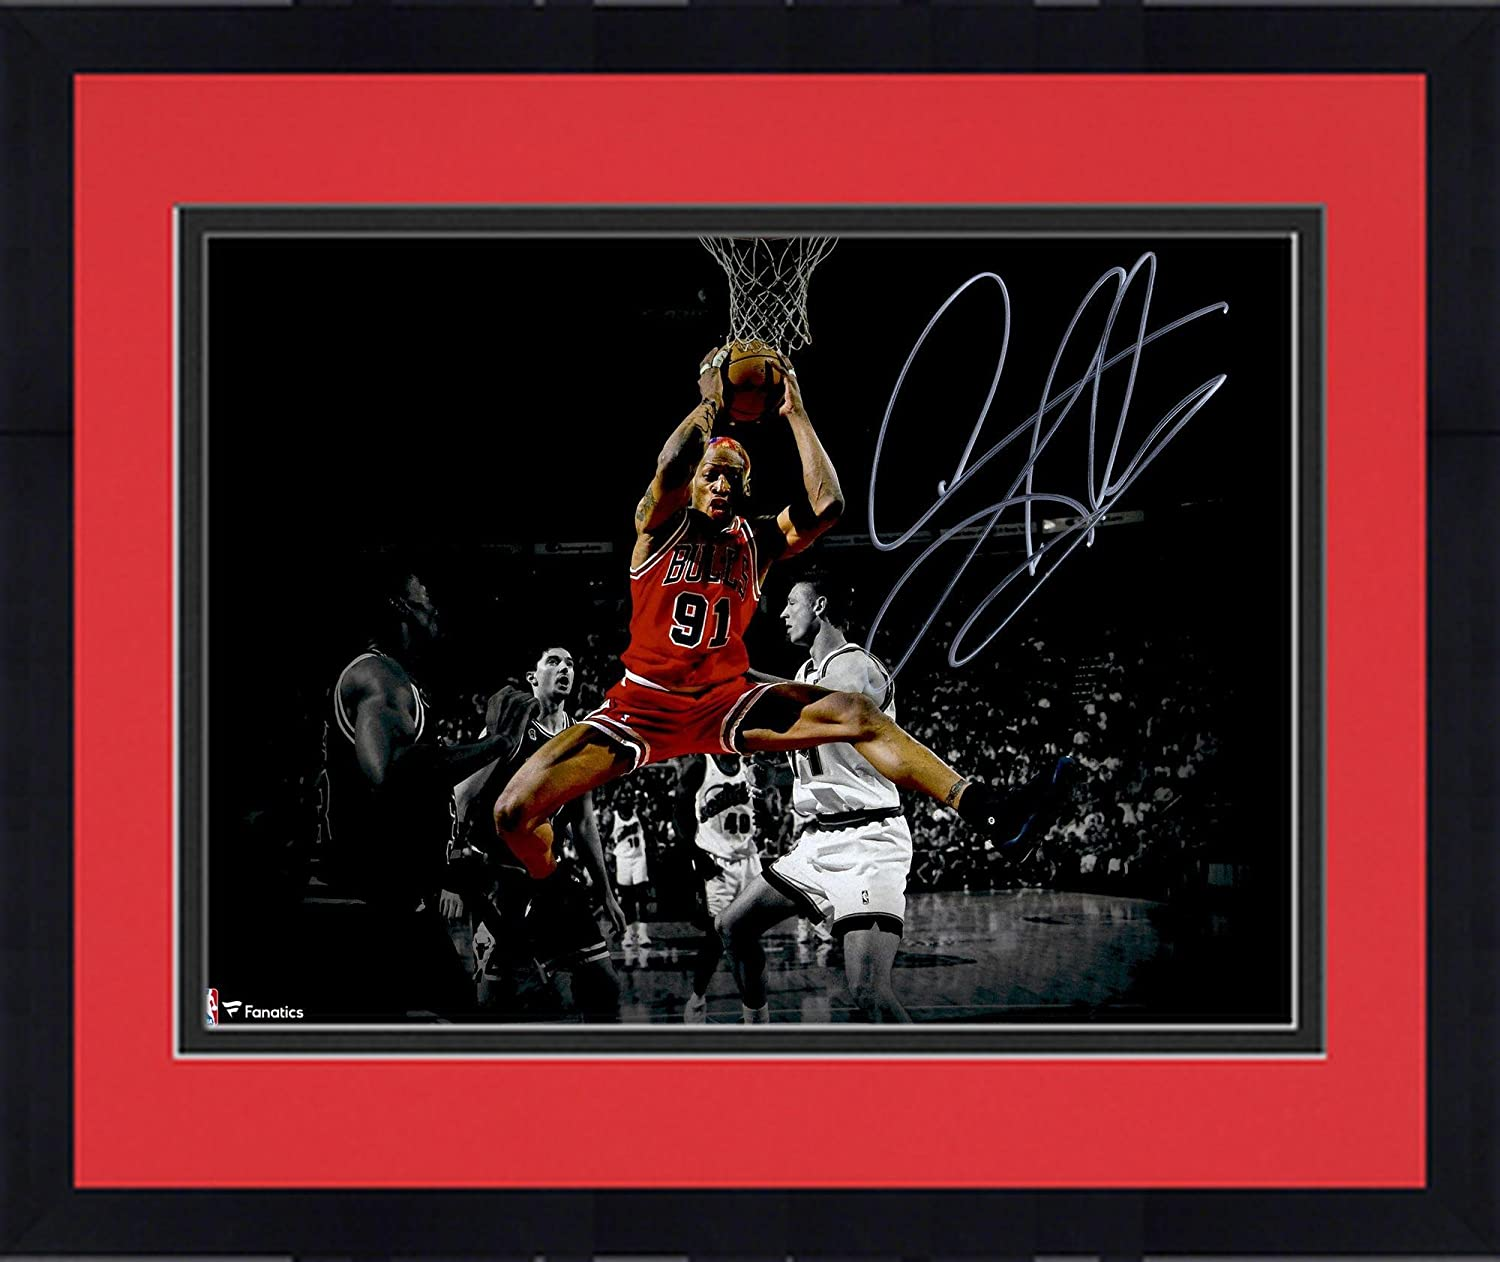 Framed Dennis Rodman Chicago Bulls Autographed 11' x 14' Spotlight Rebound Photograph - Fanatics Authentic Certified